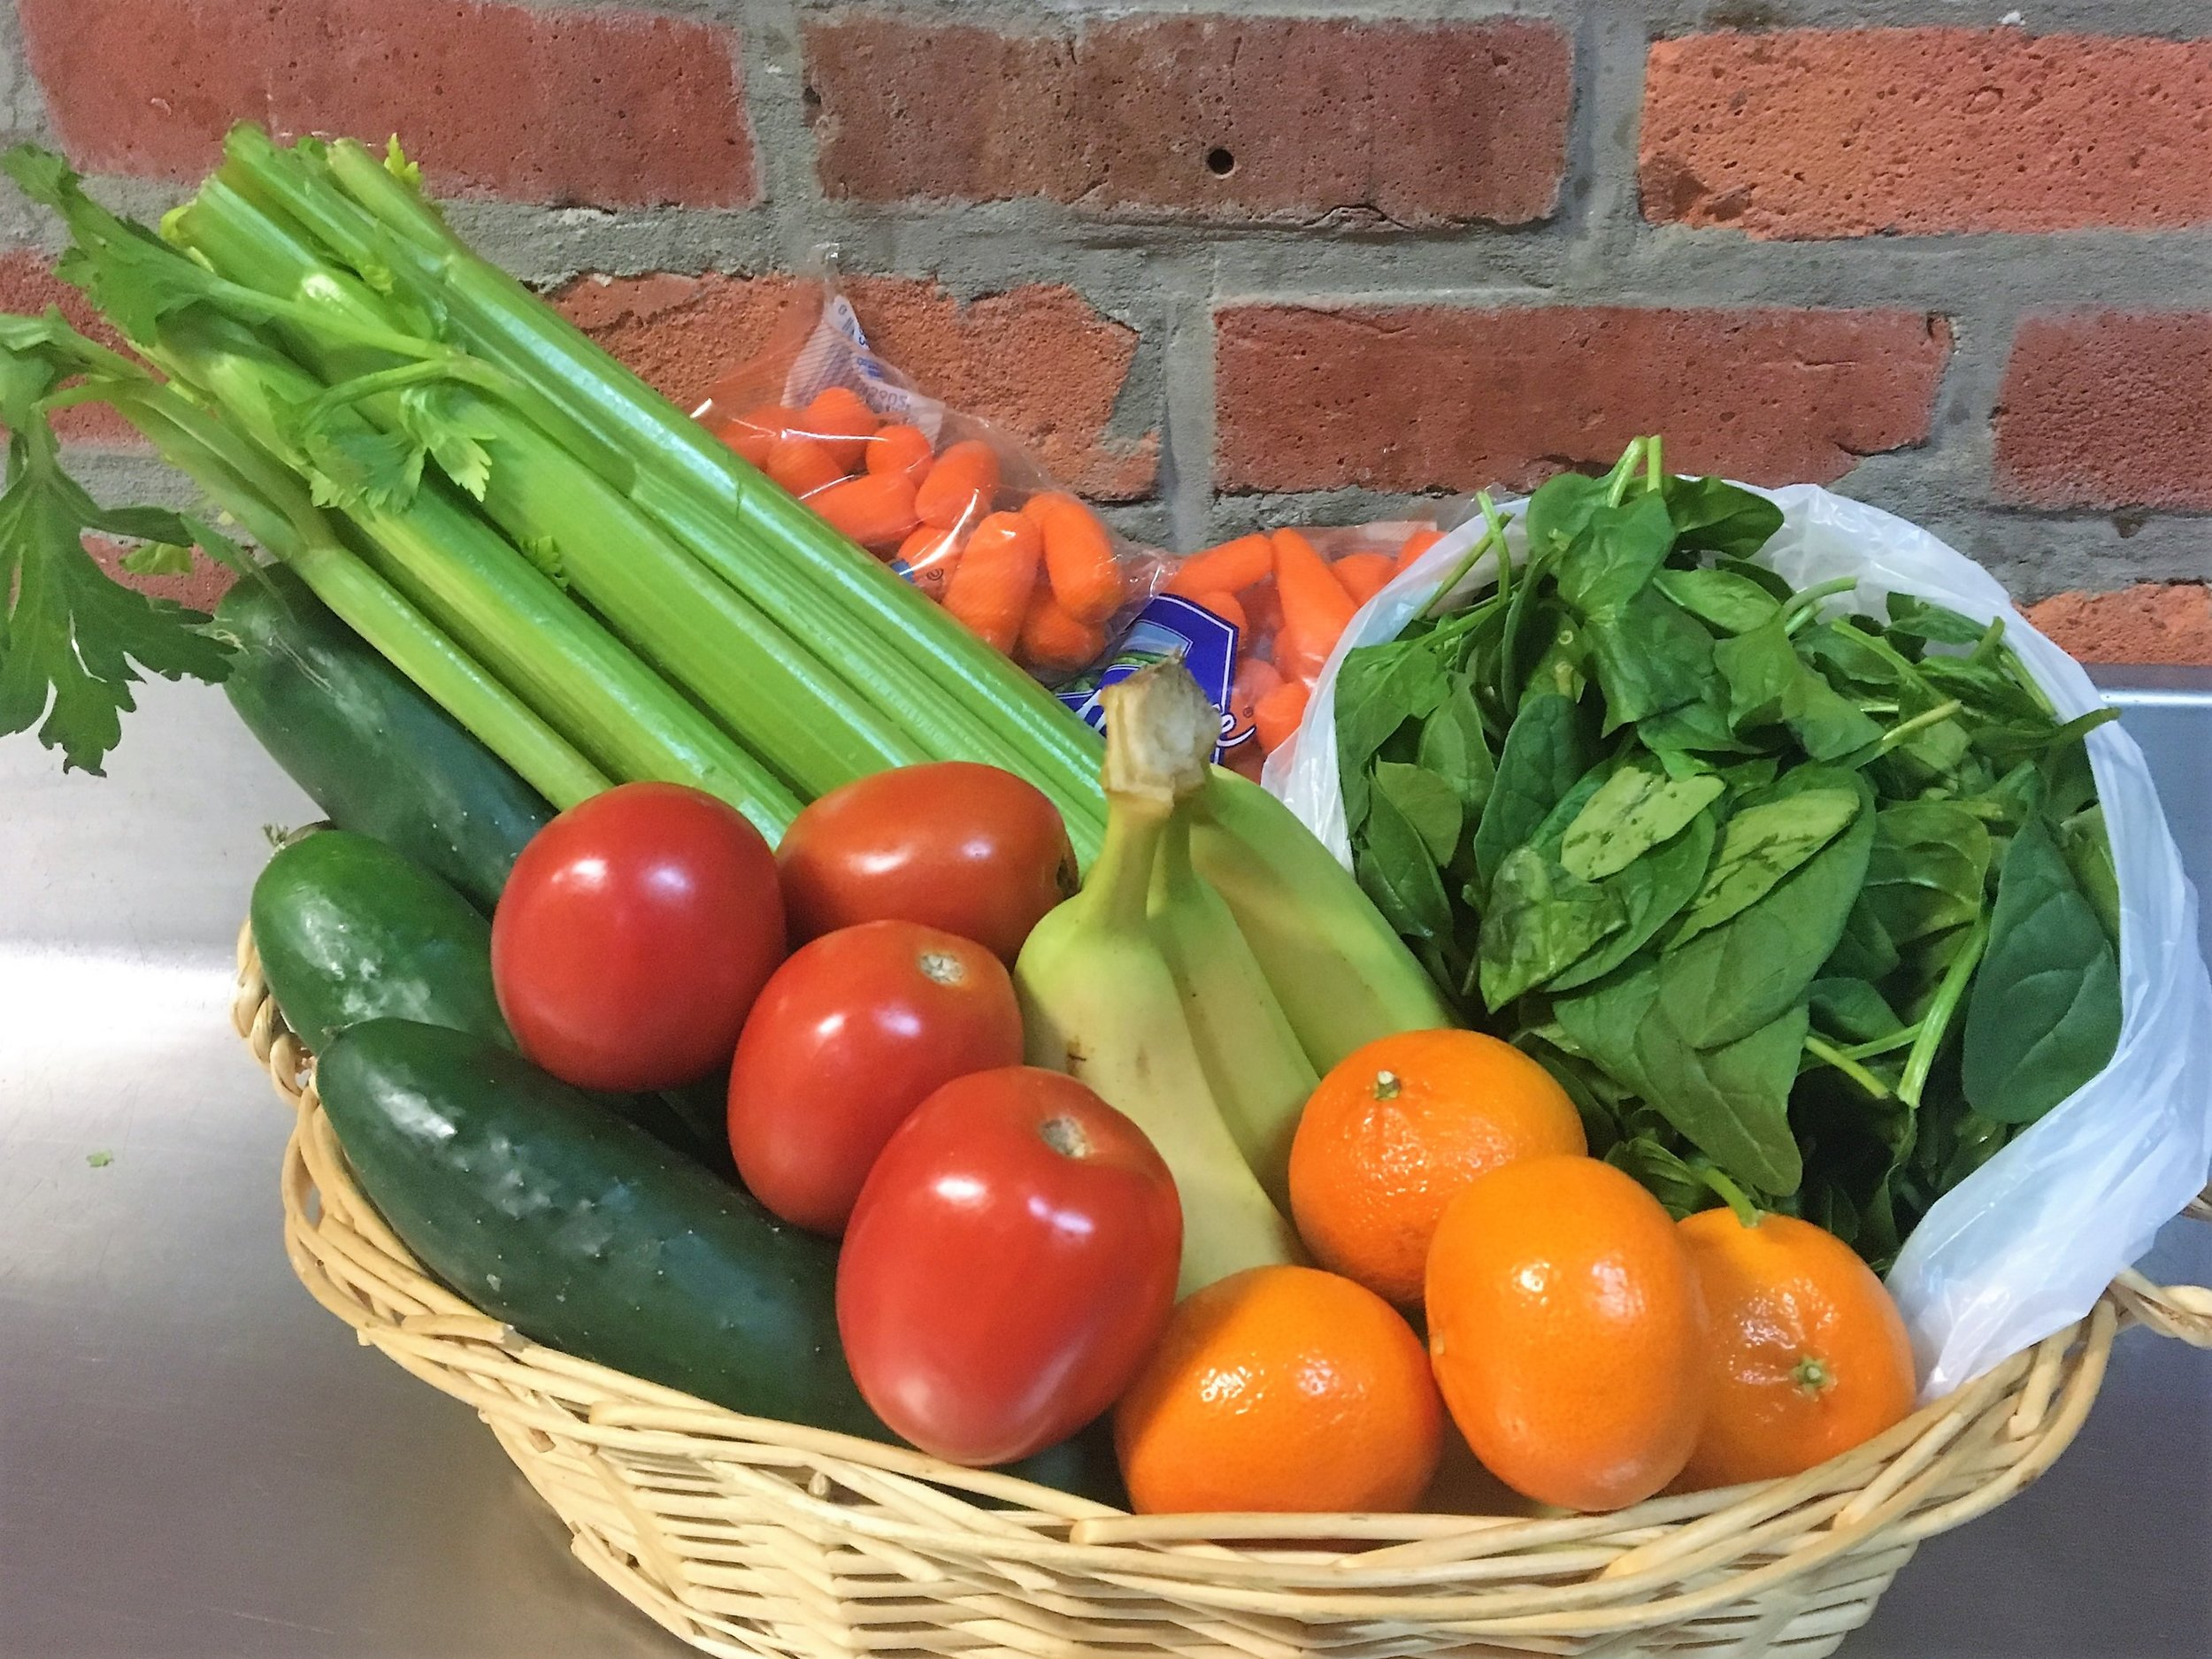 What You Get: - Your weekly bag of food will contain 5-7 delicious varieties of the fruits and veggies in season, all recently harvested and bulk purchased for you. The retail value of each bag aims to be well over $20 each week to maximize your investment.If a CSA share is just too much for you, and you find produce goes to waste, you'll love that a Bushel and a Peck provides just the perfect amount of food for a few meals or snacks so no produce goes unused.